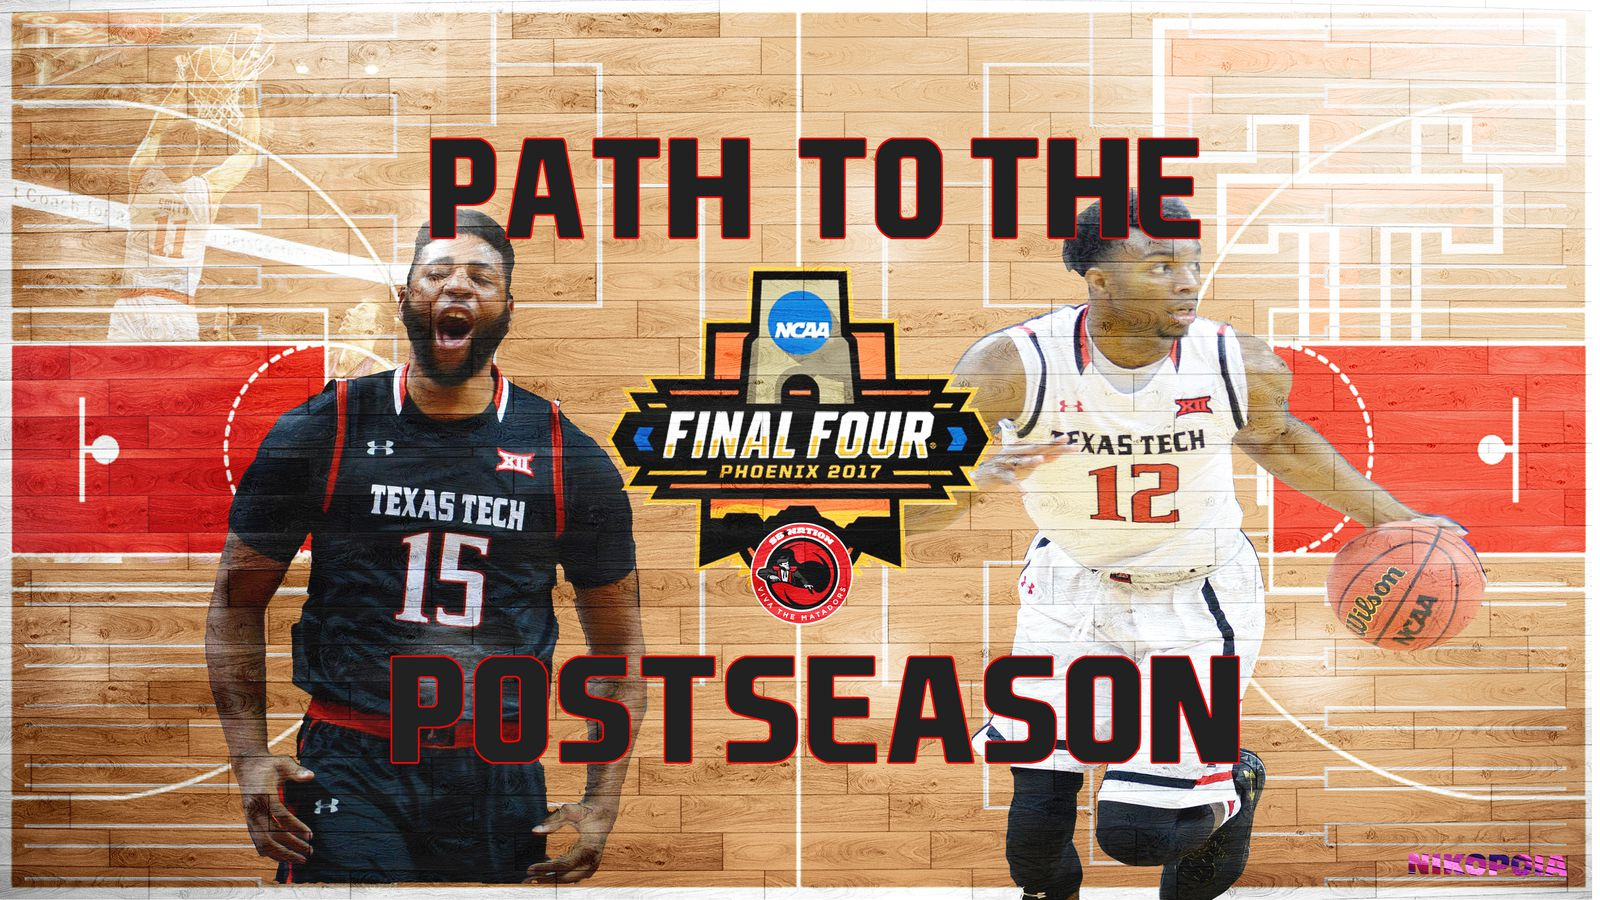 Path_to_the_tournament_gettya.0